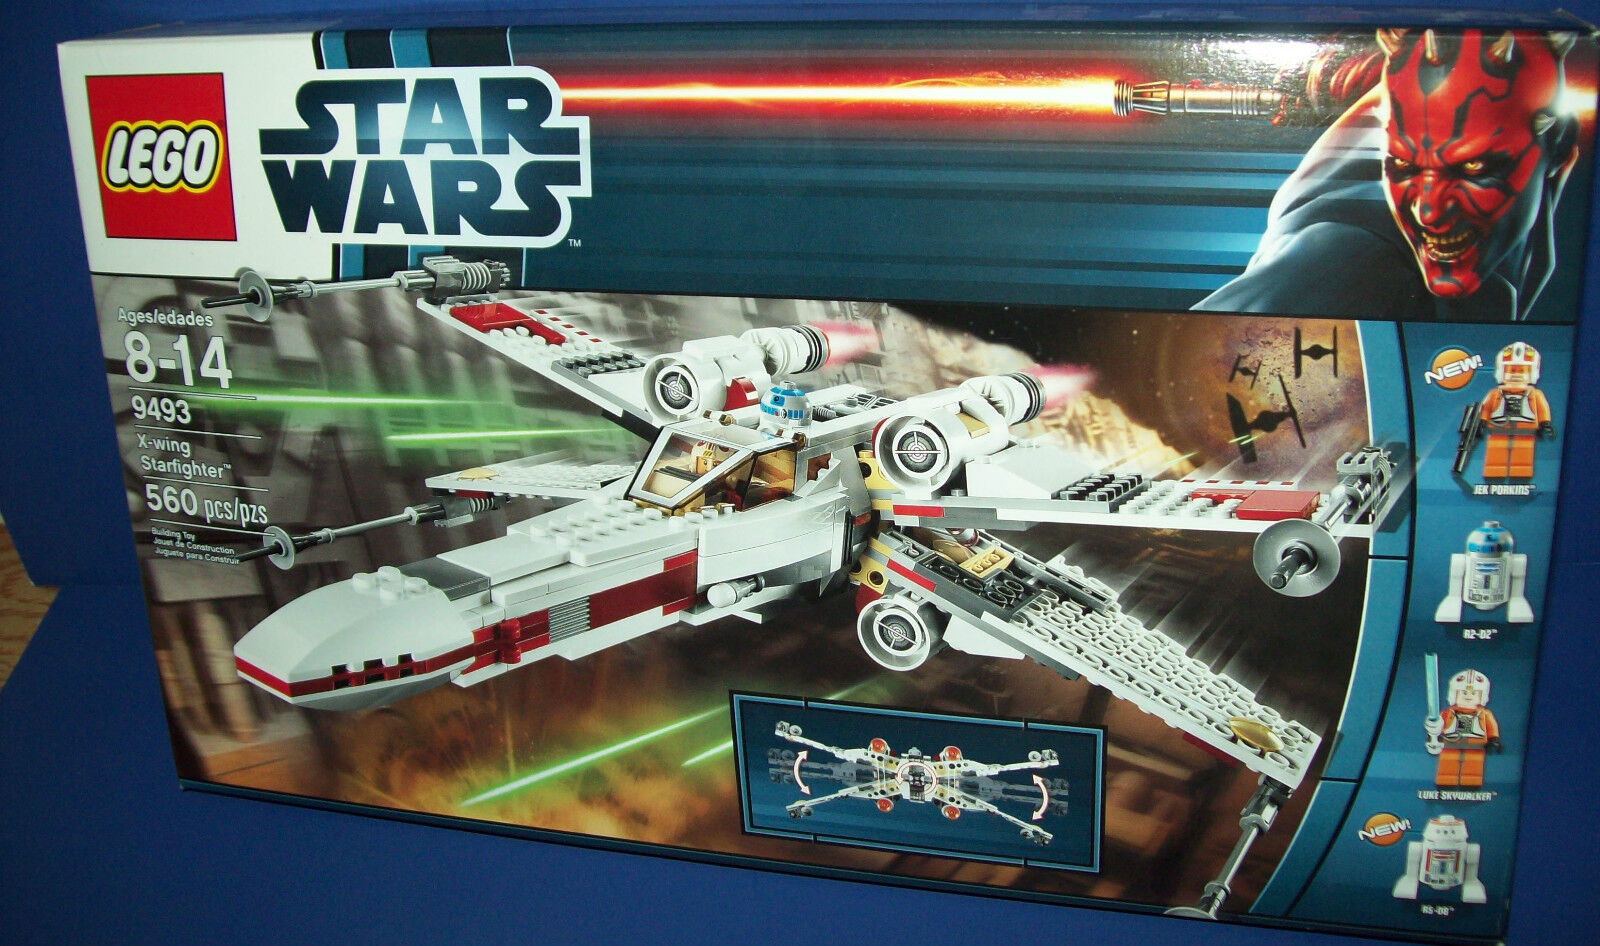 LEGO 9493 STAR WARS - X-WING STARFIGHTER Retirojo NEW in BOX sealed